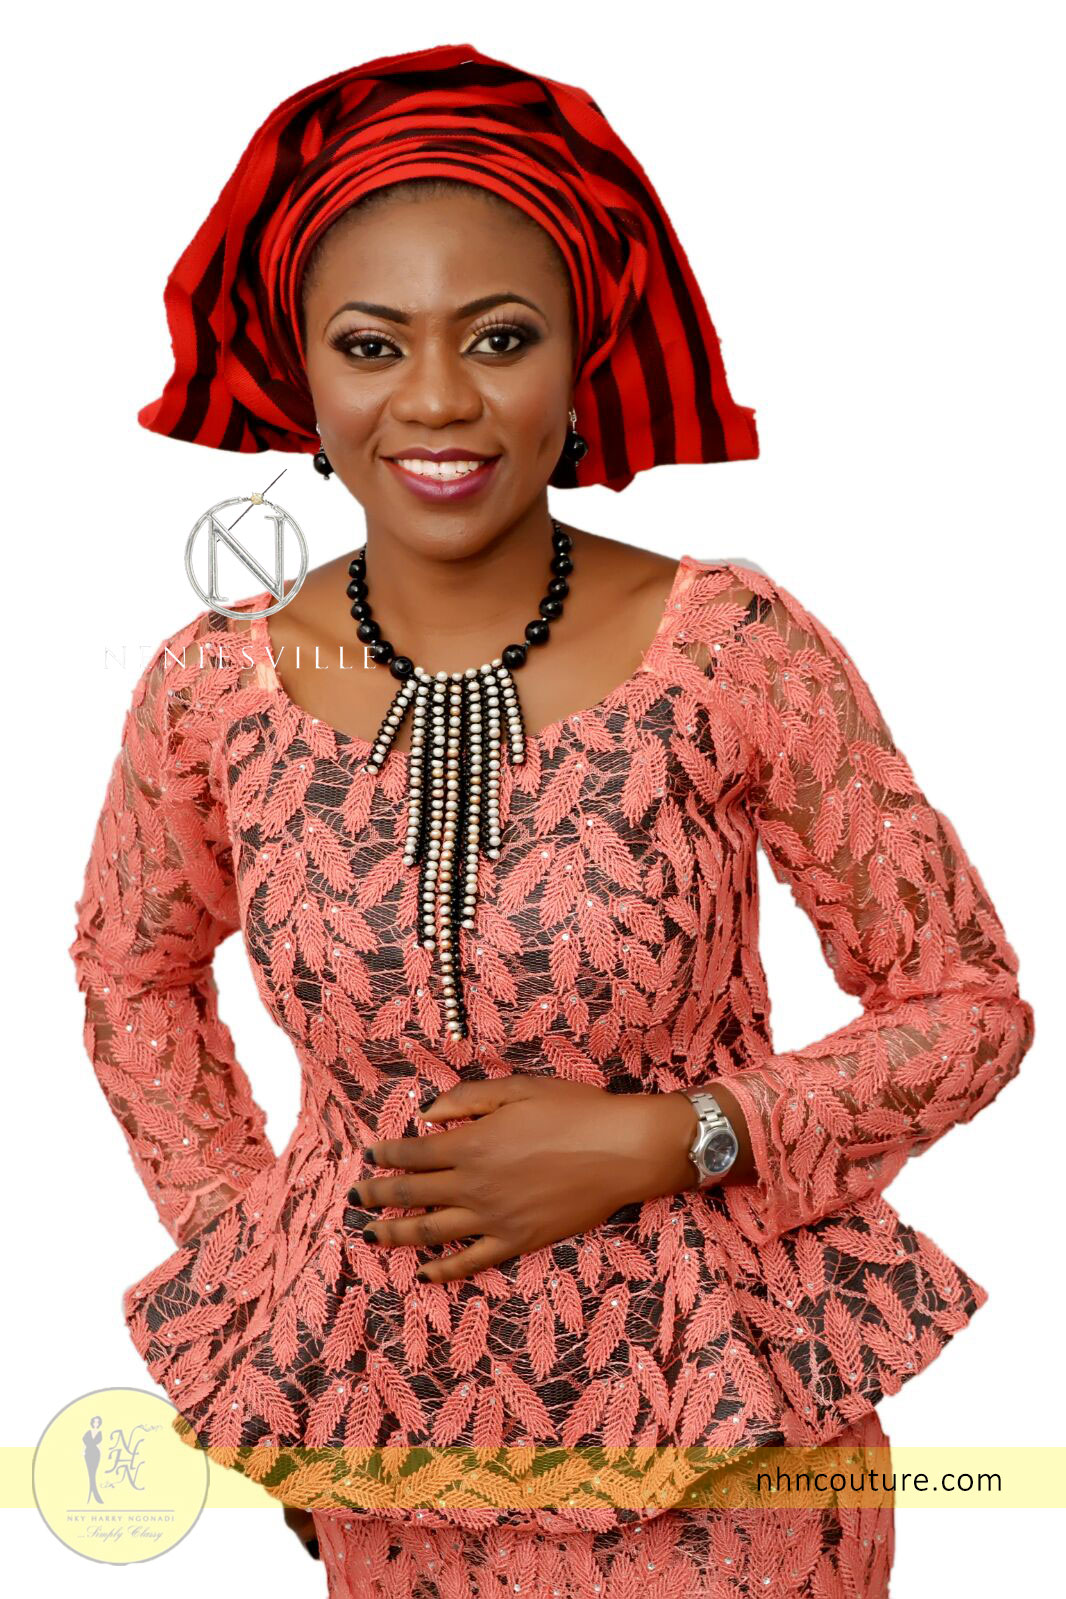 Neniesville-Jewelry_Nigerian-Attire-by-NHN-Couture_2